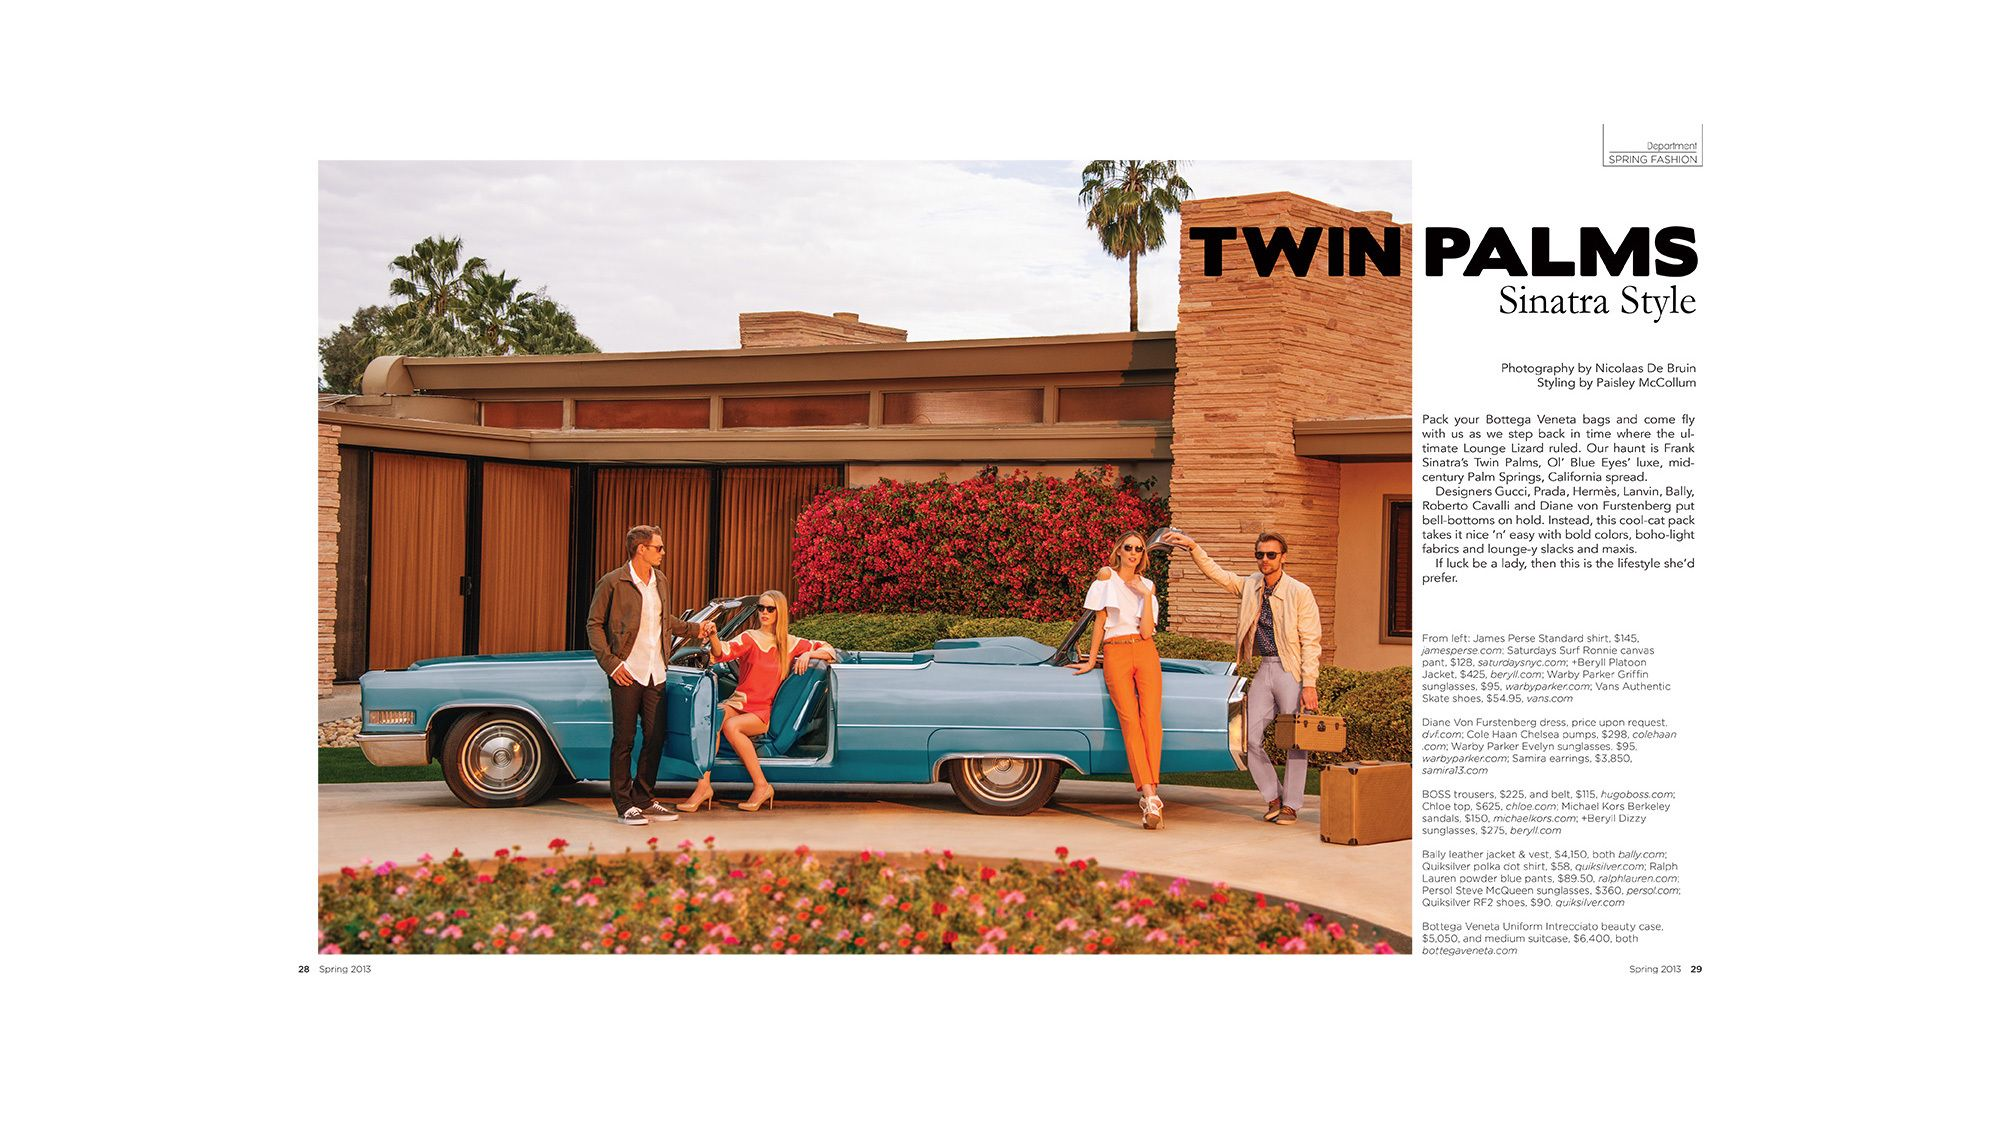 twin palms sinatra residence editorial photoshoot by fashion photographer nicolaas de bruin